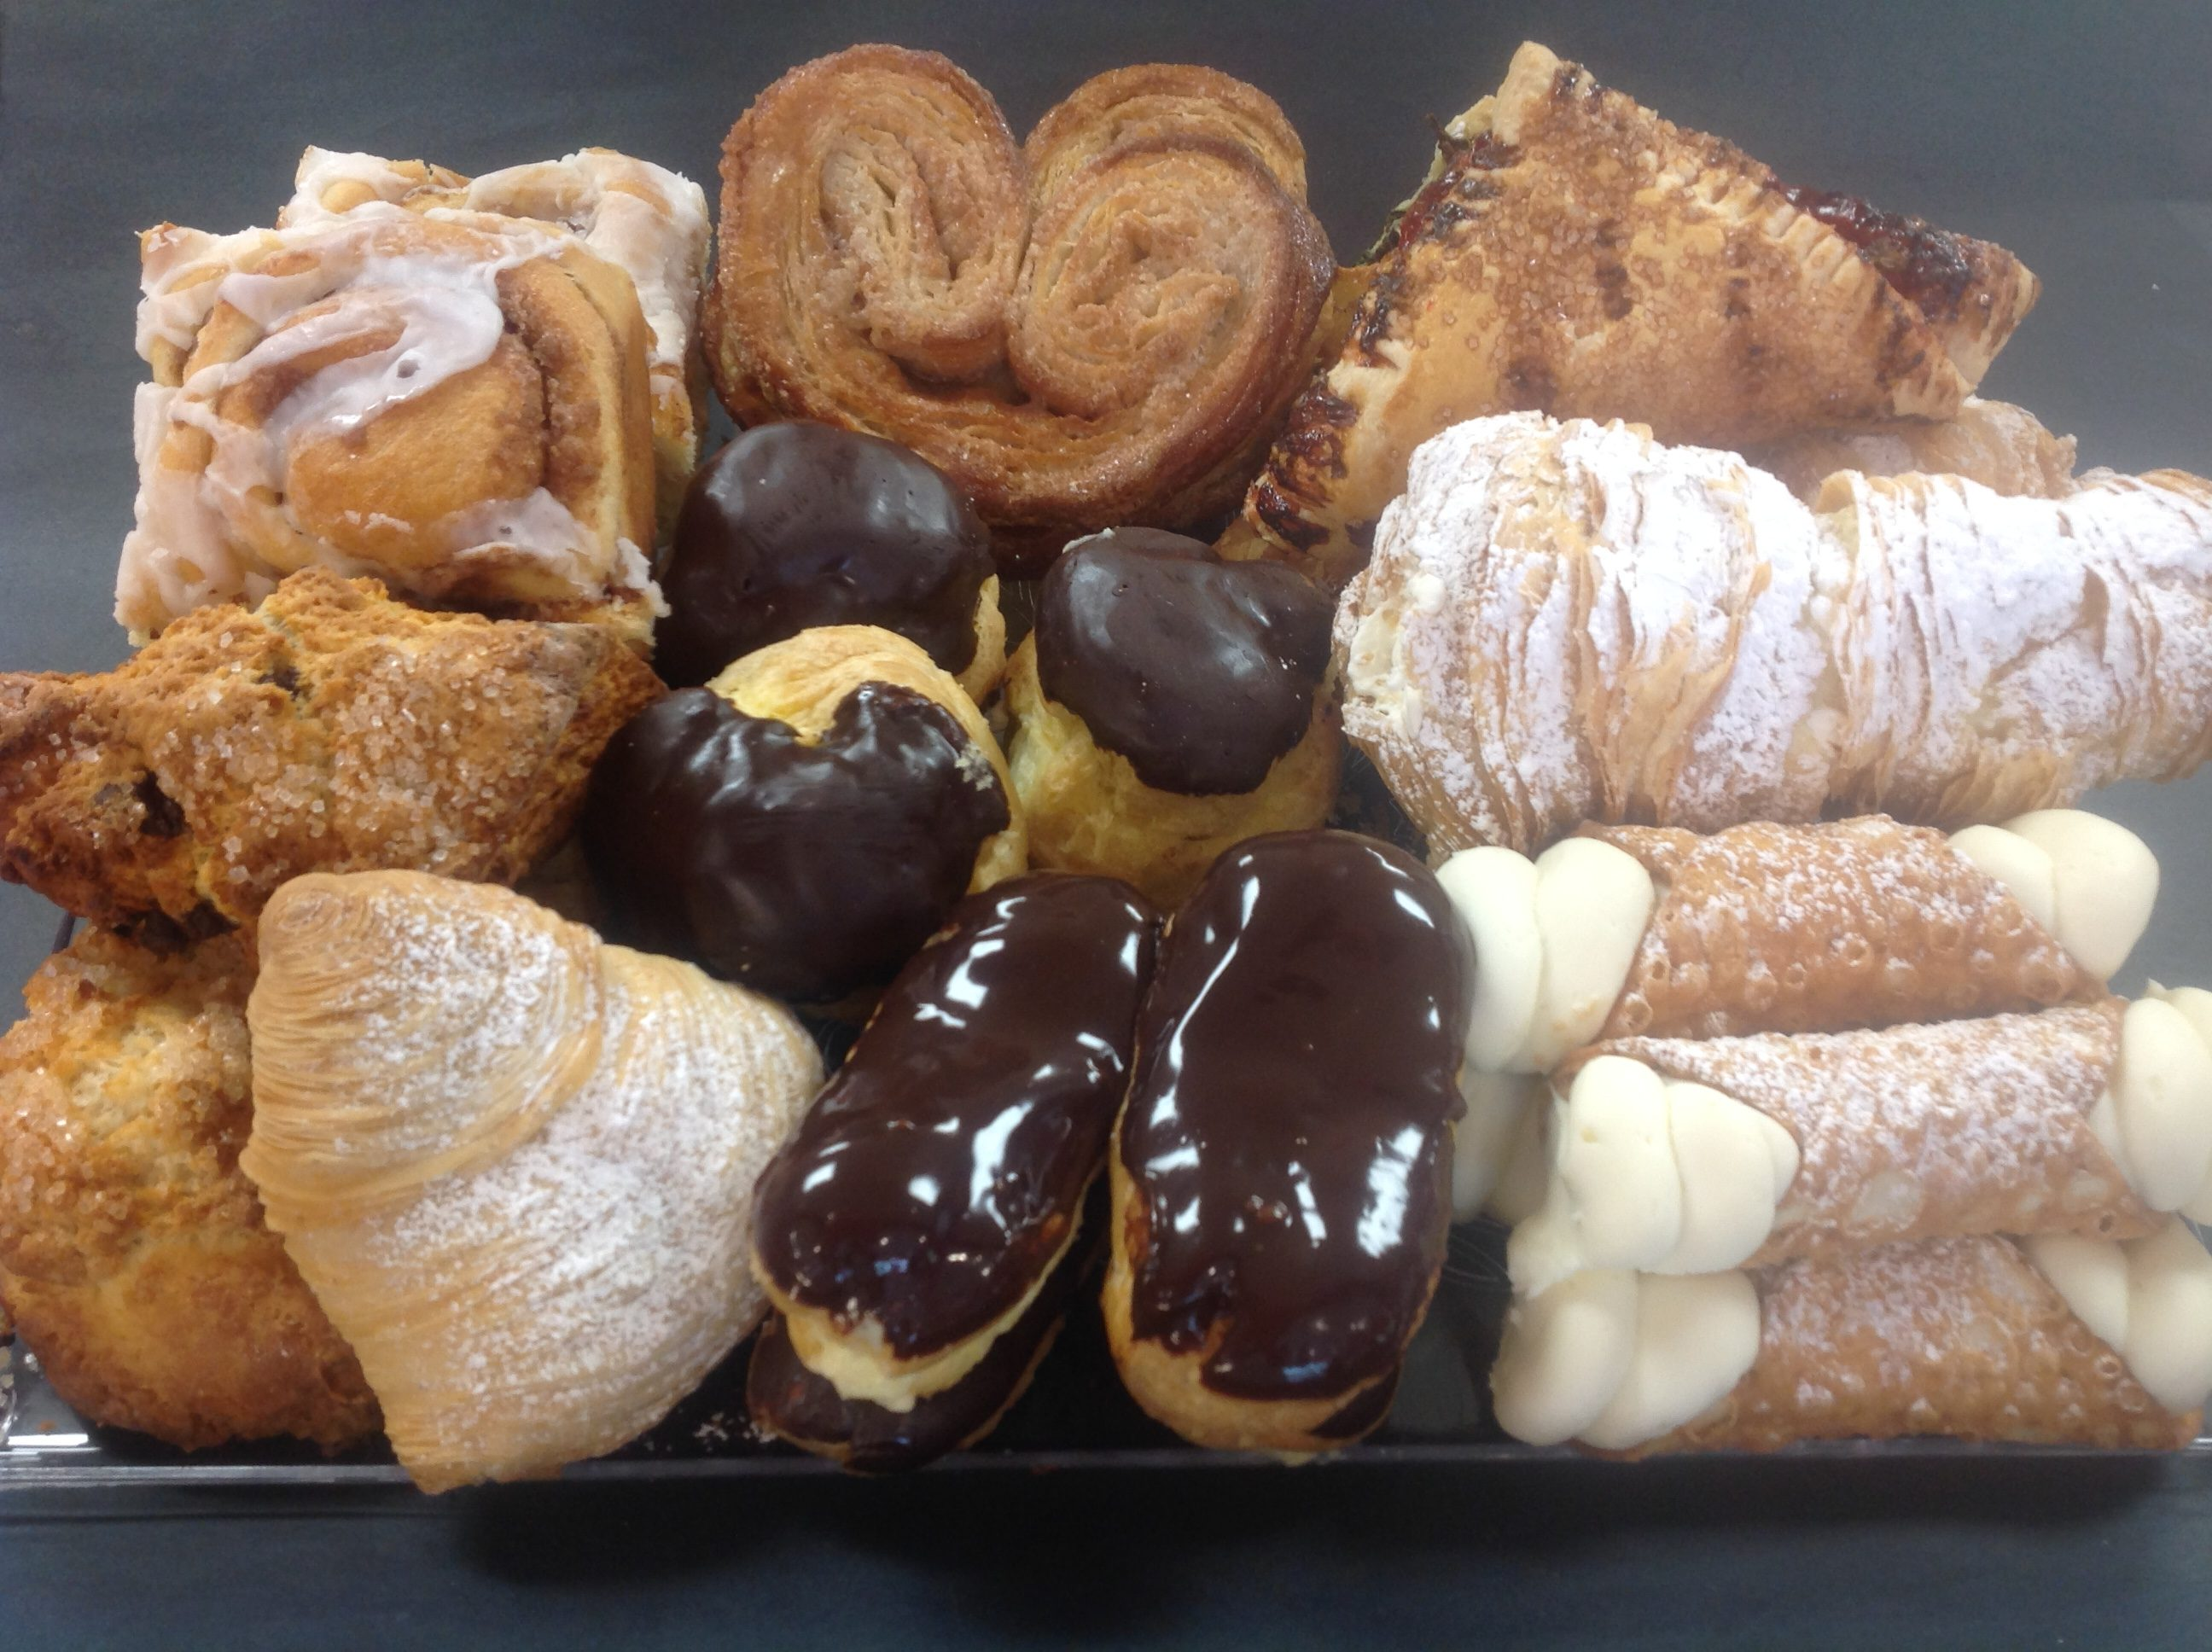 Assorted Pastry Platters at Dolce and Biscotti Italian Bakery